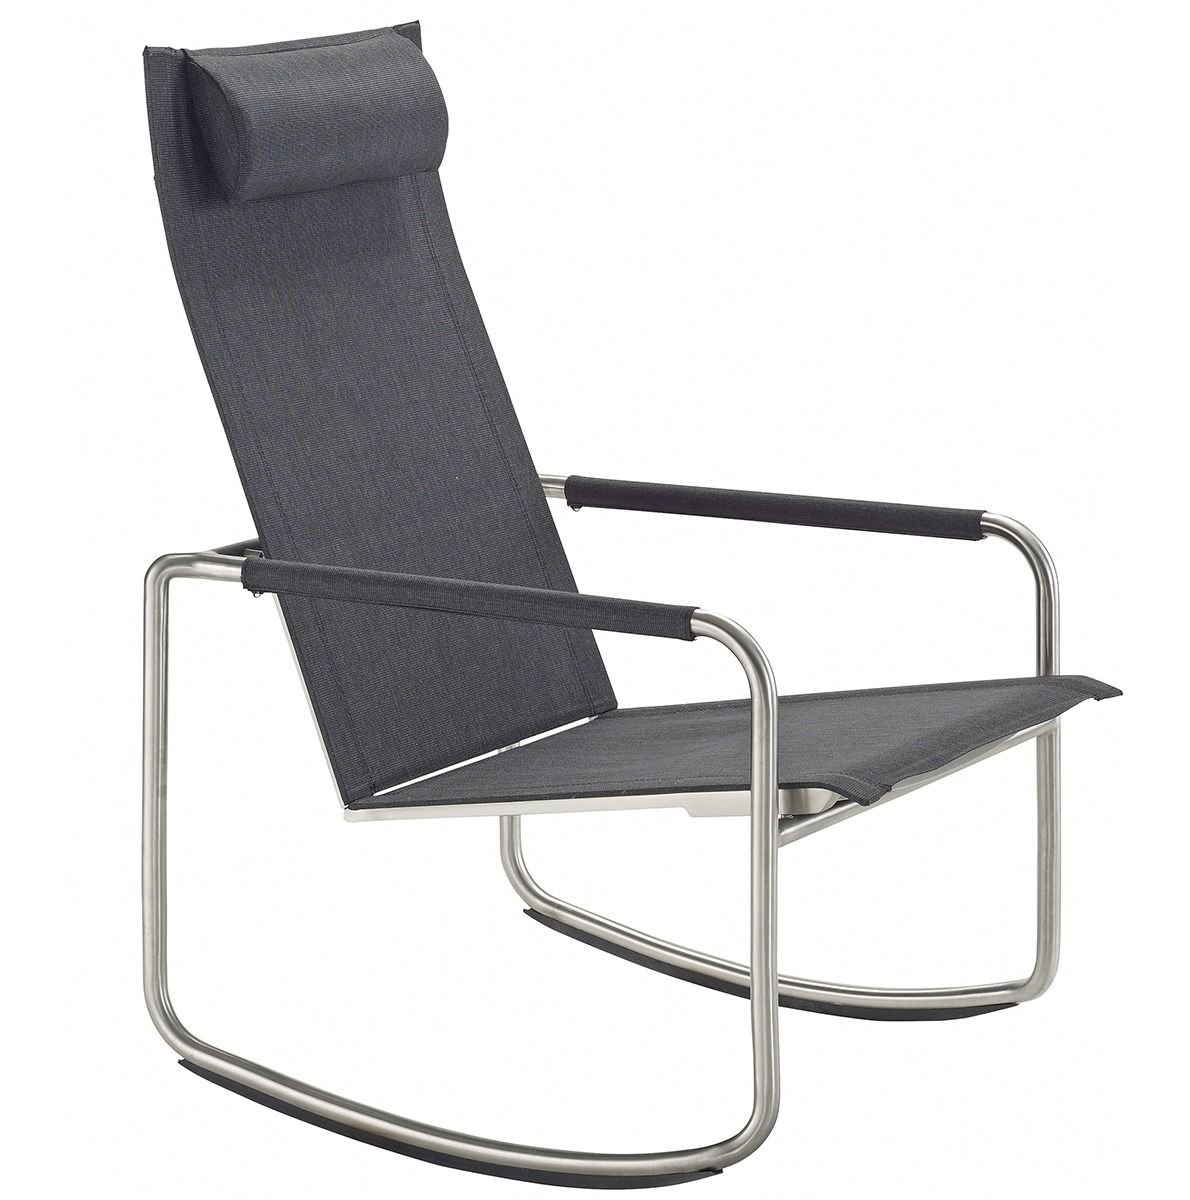 Solpuri Jardin Rocking Deck Chair inkl. Nackenrolle